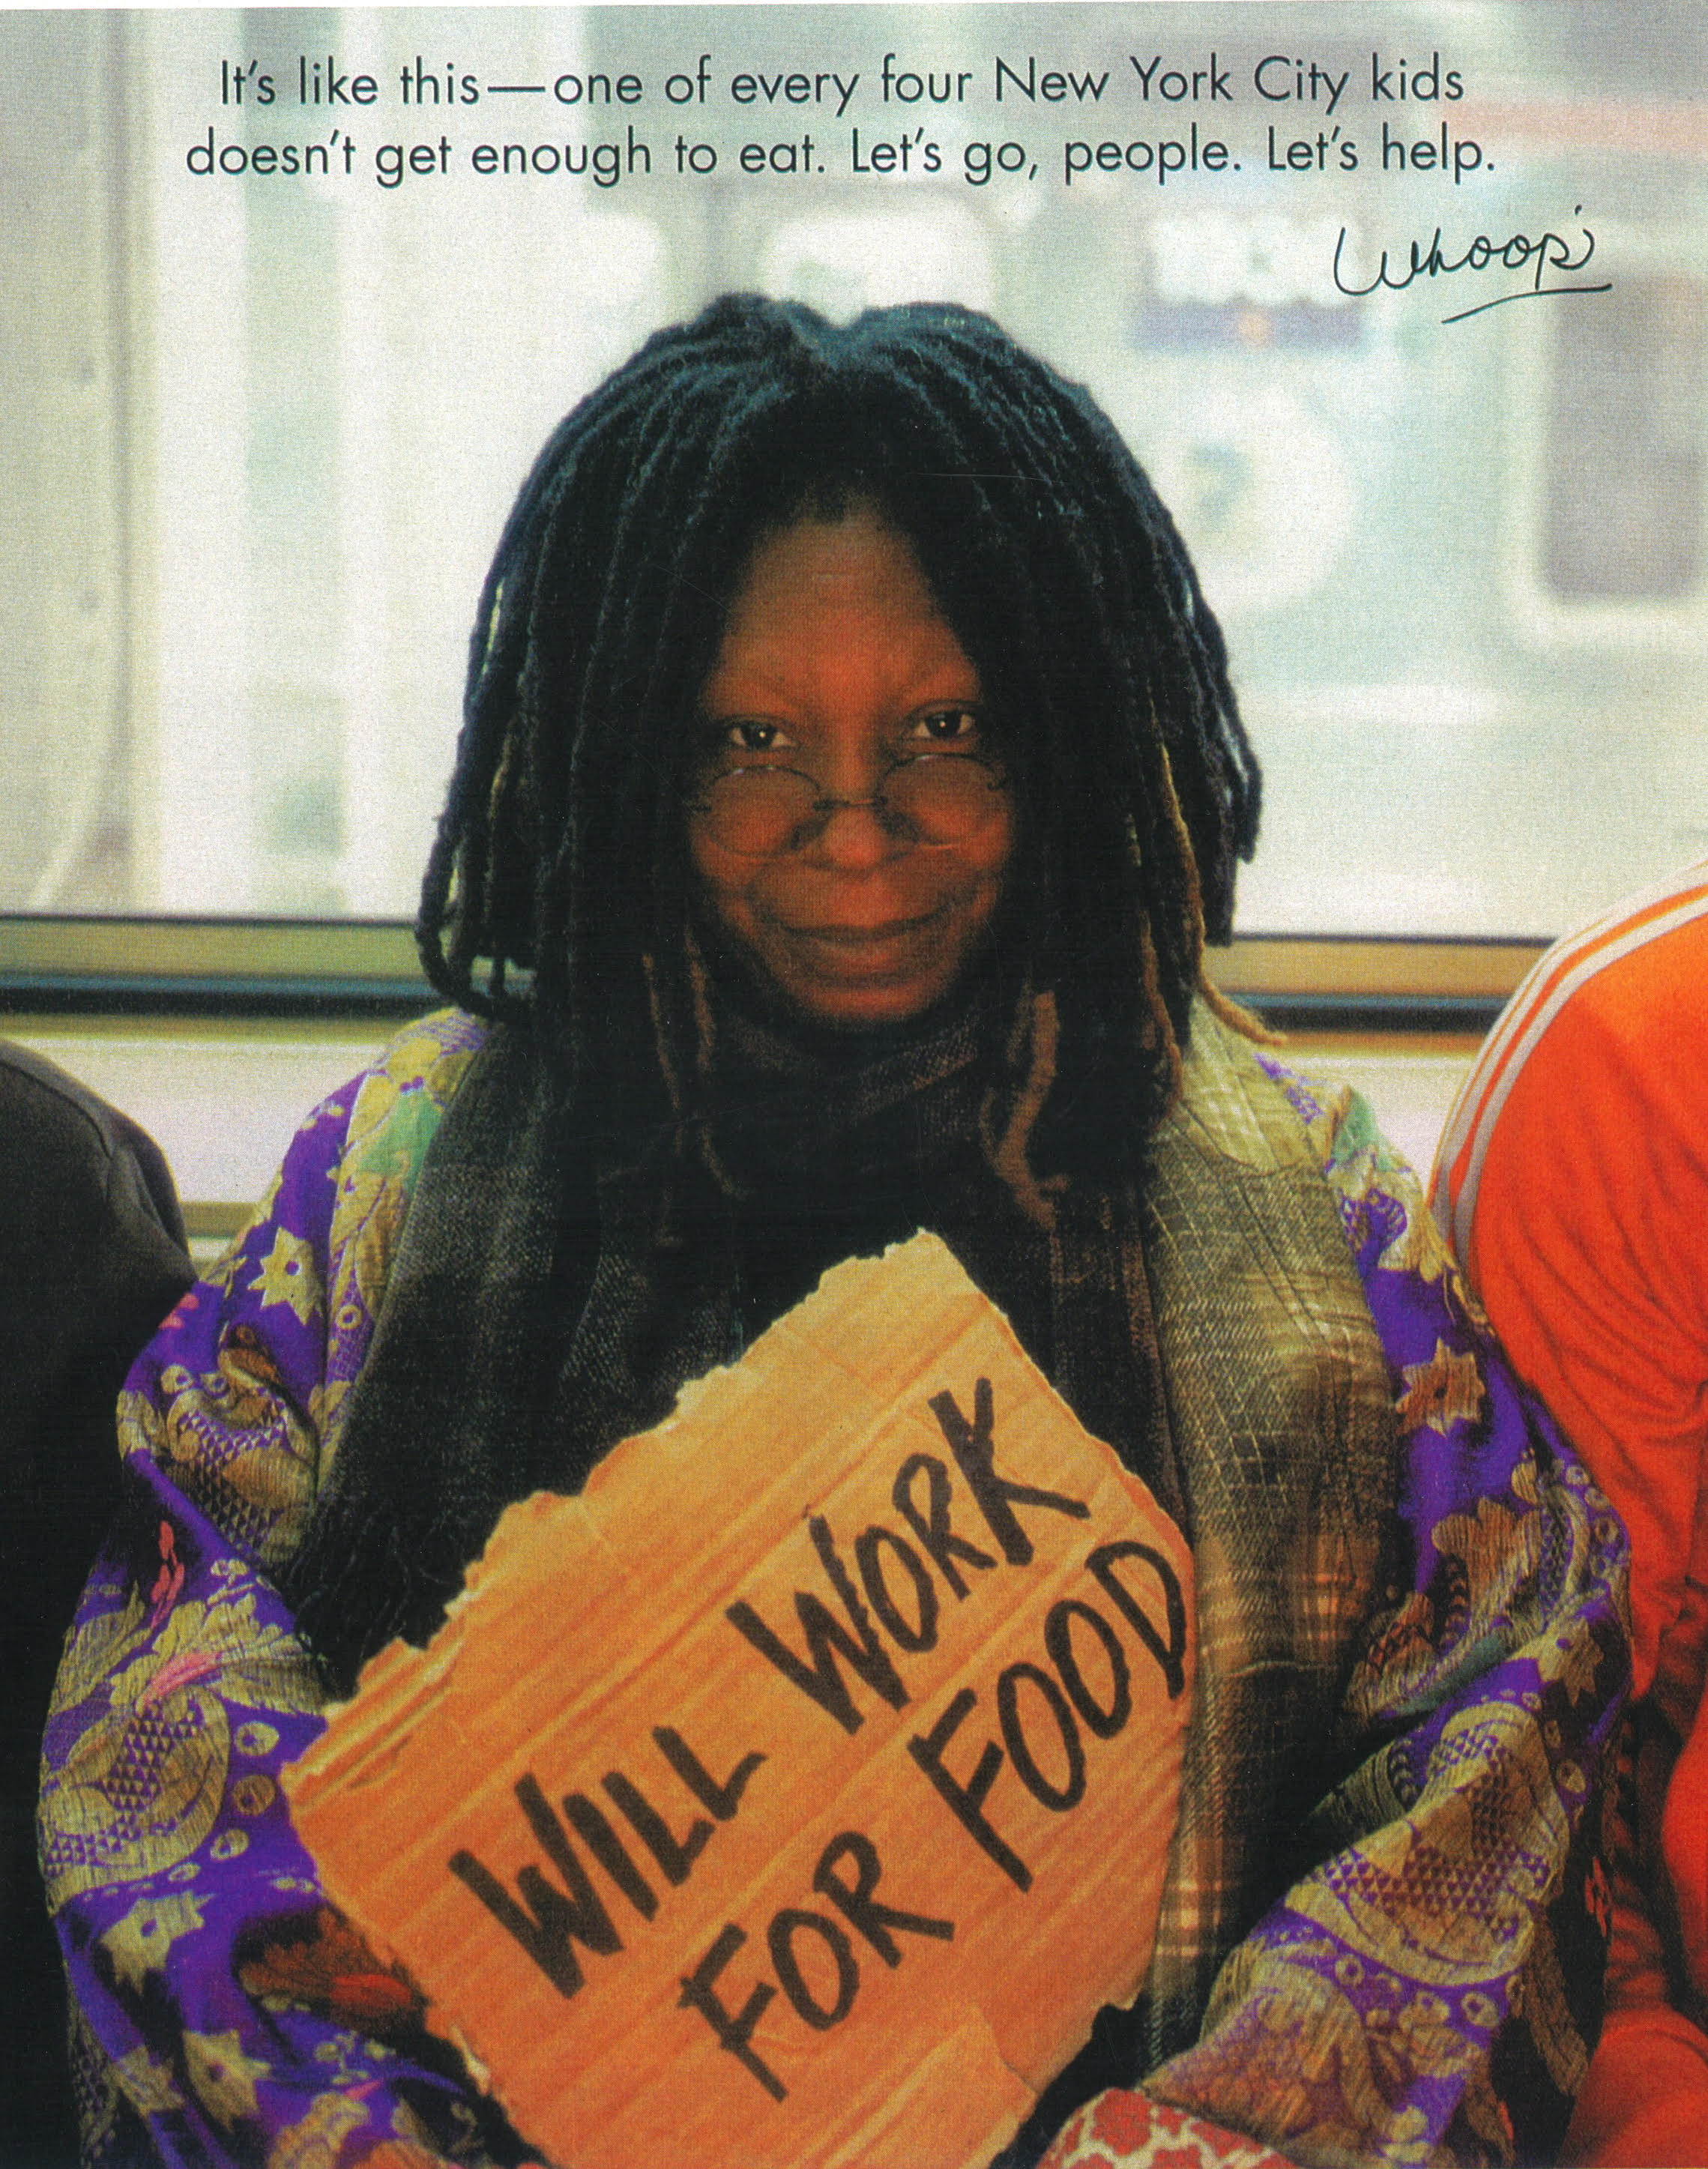 Whoopi Goldberg for City Harvest - During one of Whoopi Goldberg's visits to Dö Kham she spotted this antique purple silk brocade robe which was later featured in the City Harvest campaign to end hunger in communities throughout New York City